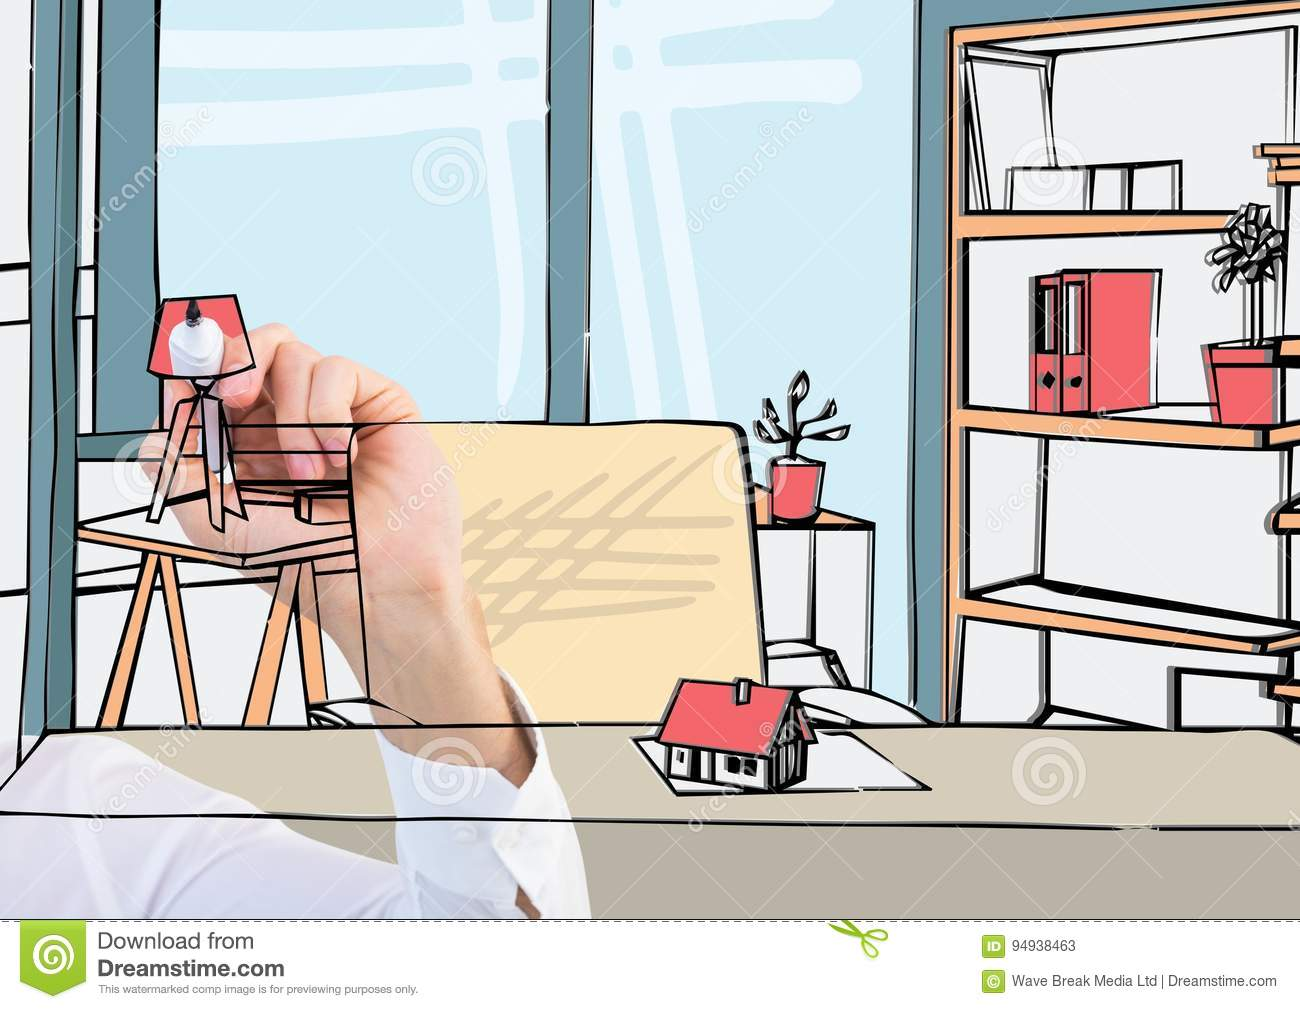 Drawing Lines In Office : Hand drawing office lines in the screen with color stock